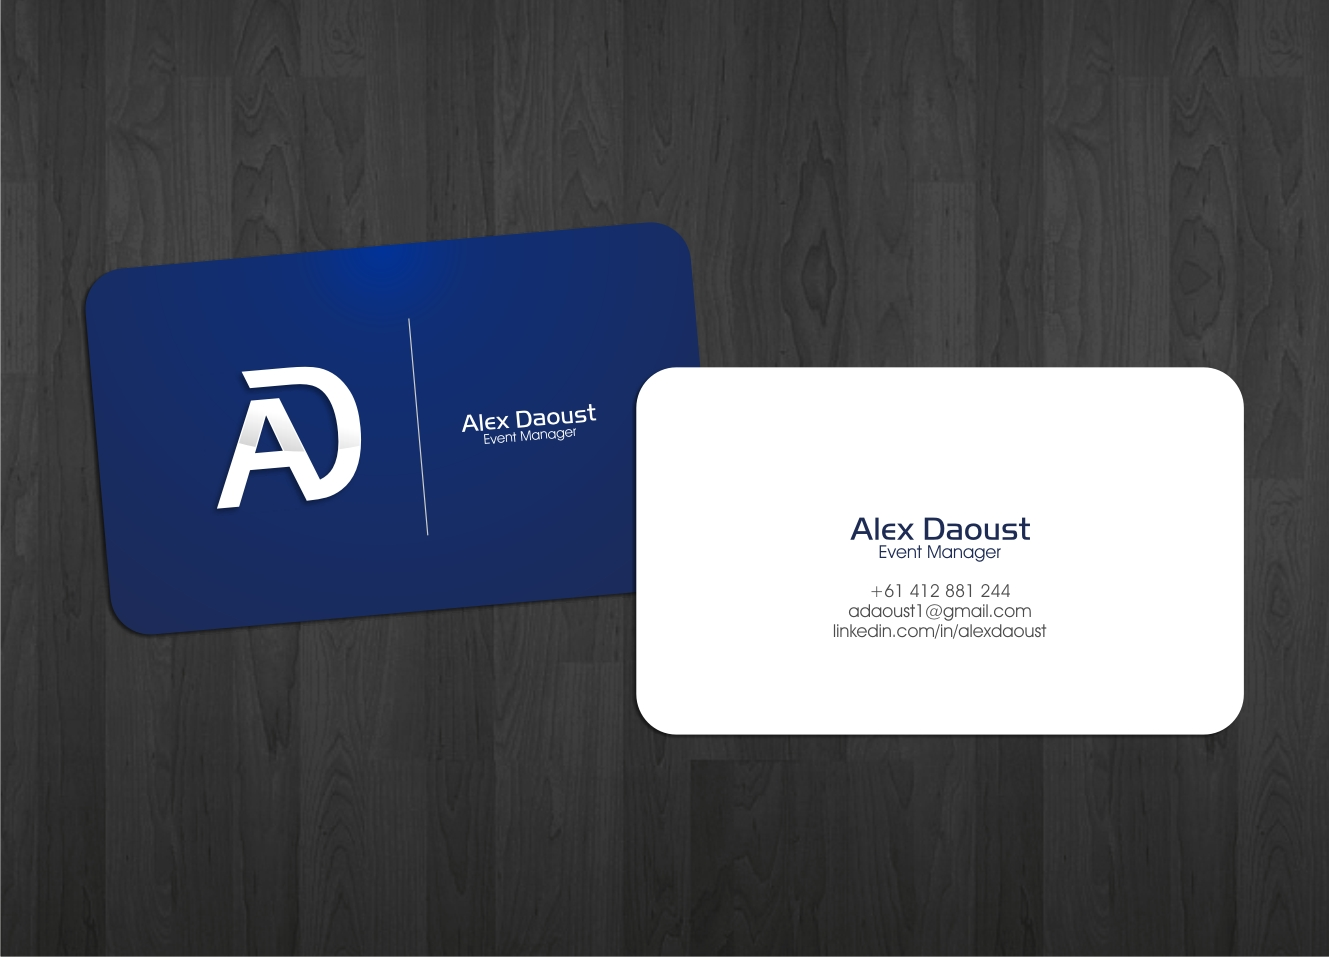 Modern Masculine Business Card Design For Alex Daoust By Momo57